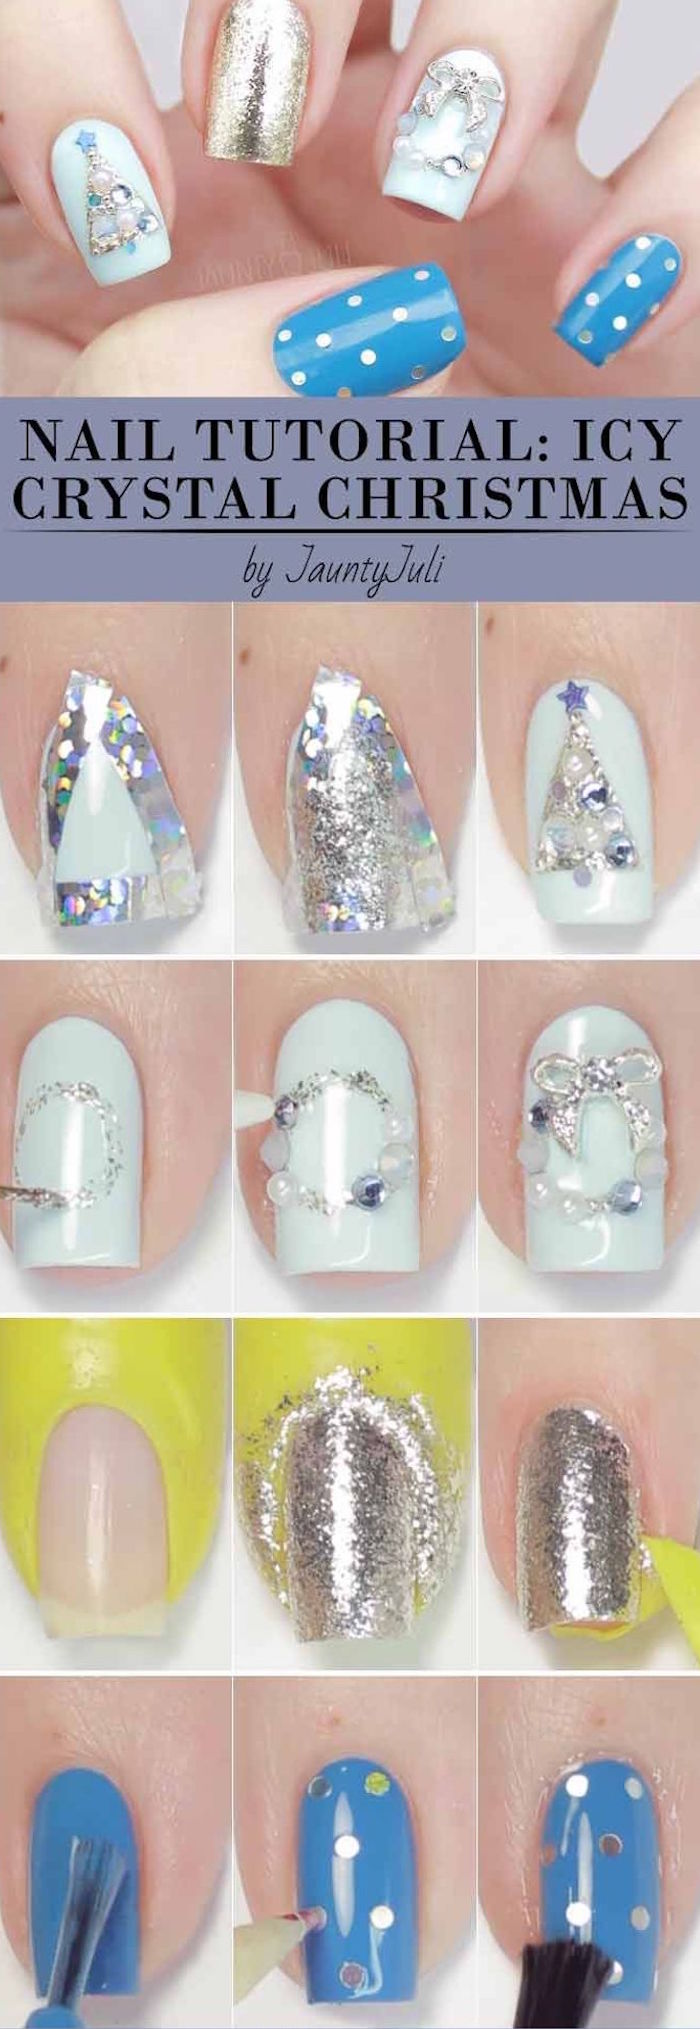 icy crystal christmas step by step diy tutorial for christmas tree and garland decorations with rhinestones christmas nail colors